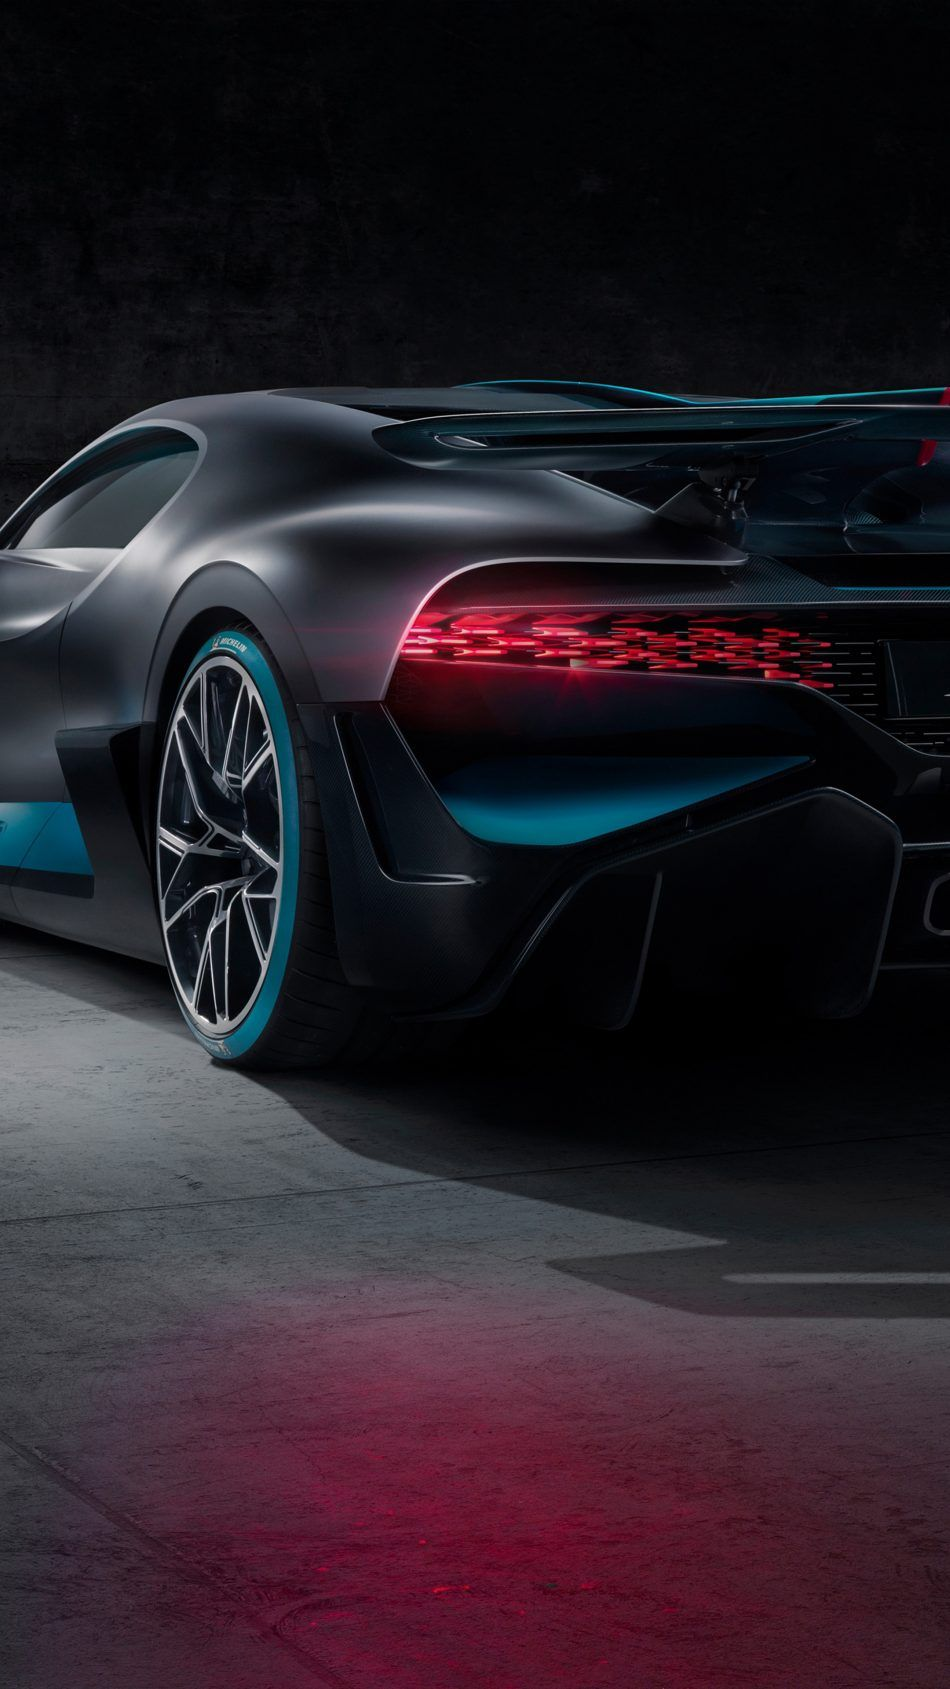 Bugatti Divo 2019 Car Wallpaper For Mobile Car Wallpapers